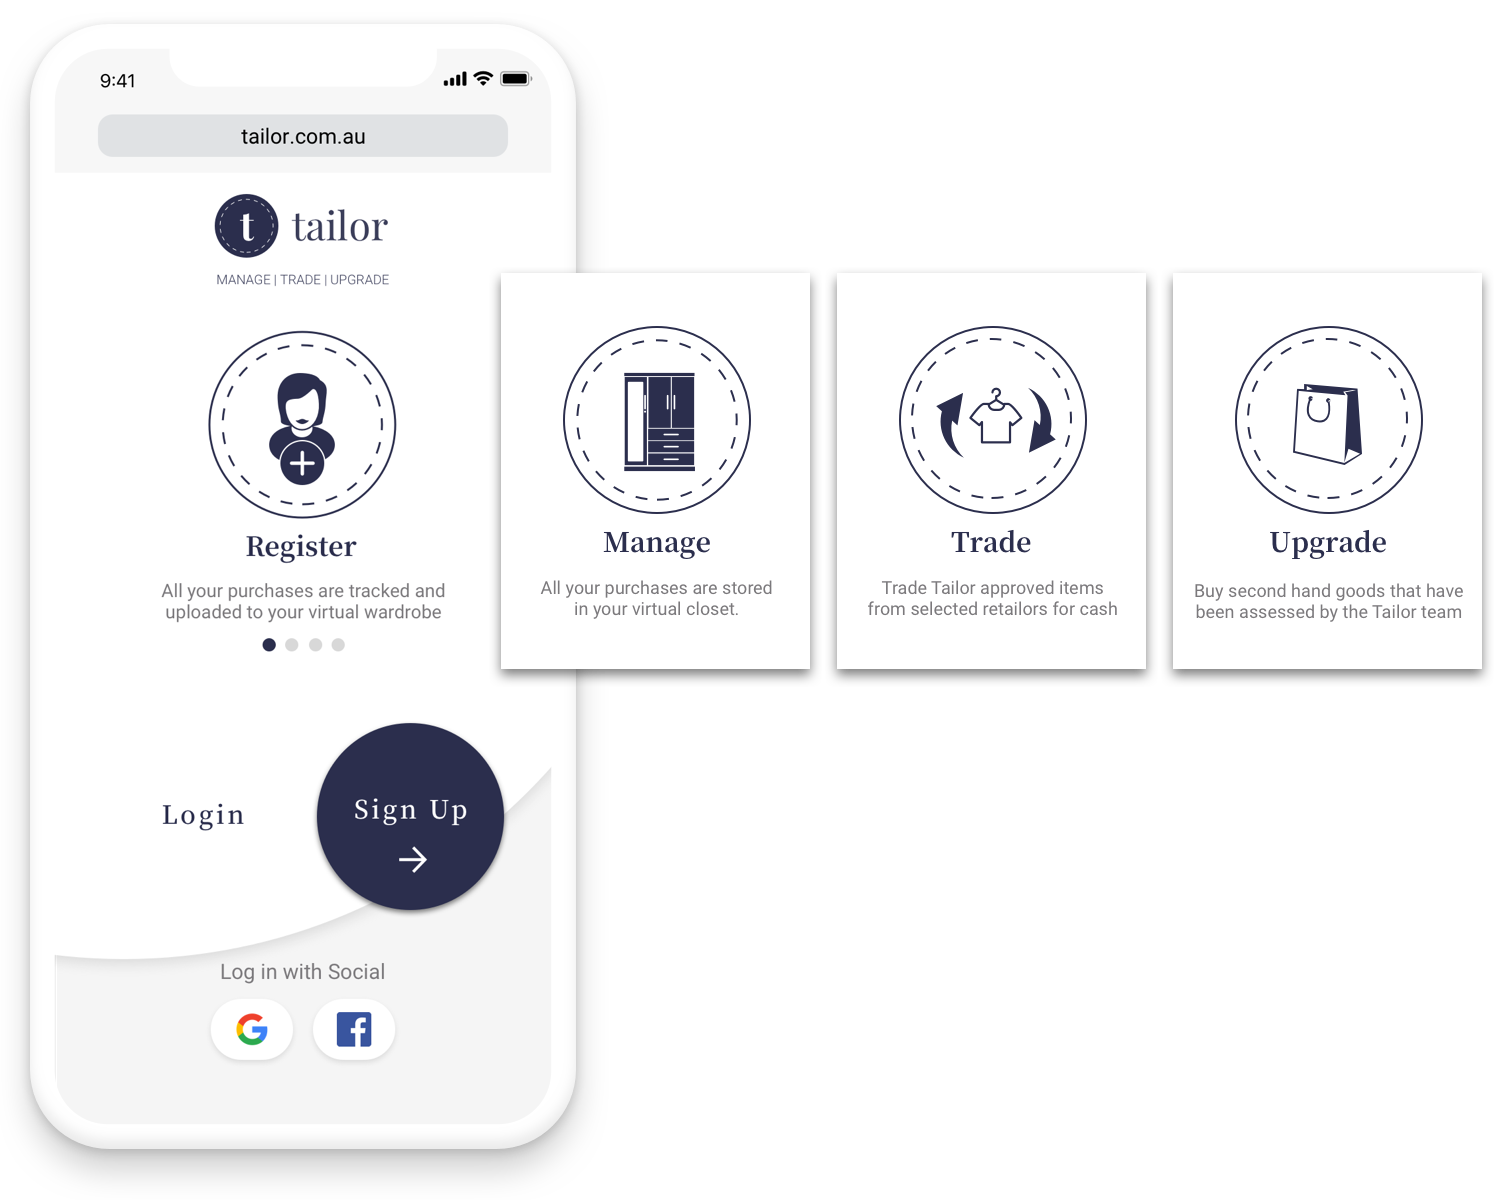 Users will come to an onboarding page which will explain all the benefits of Tailor.